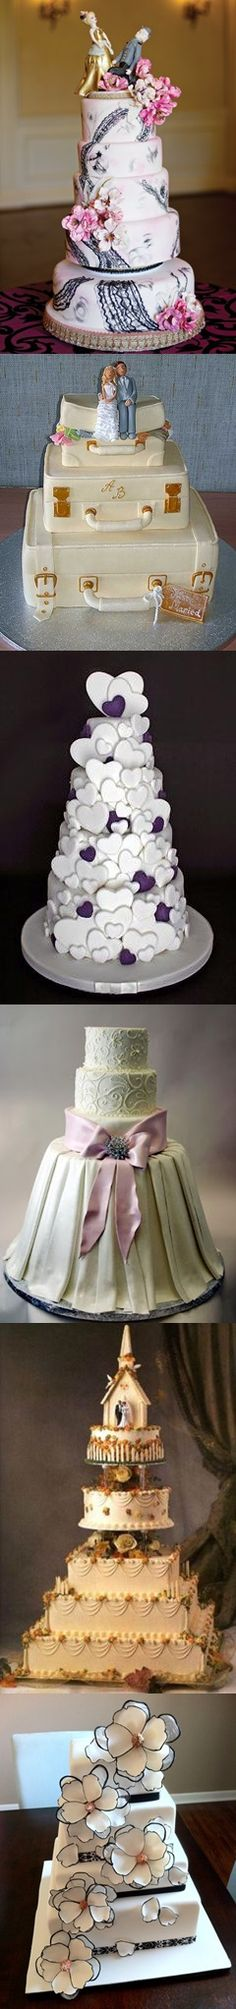 wedding cakes- love the suitcase one!!